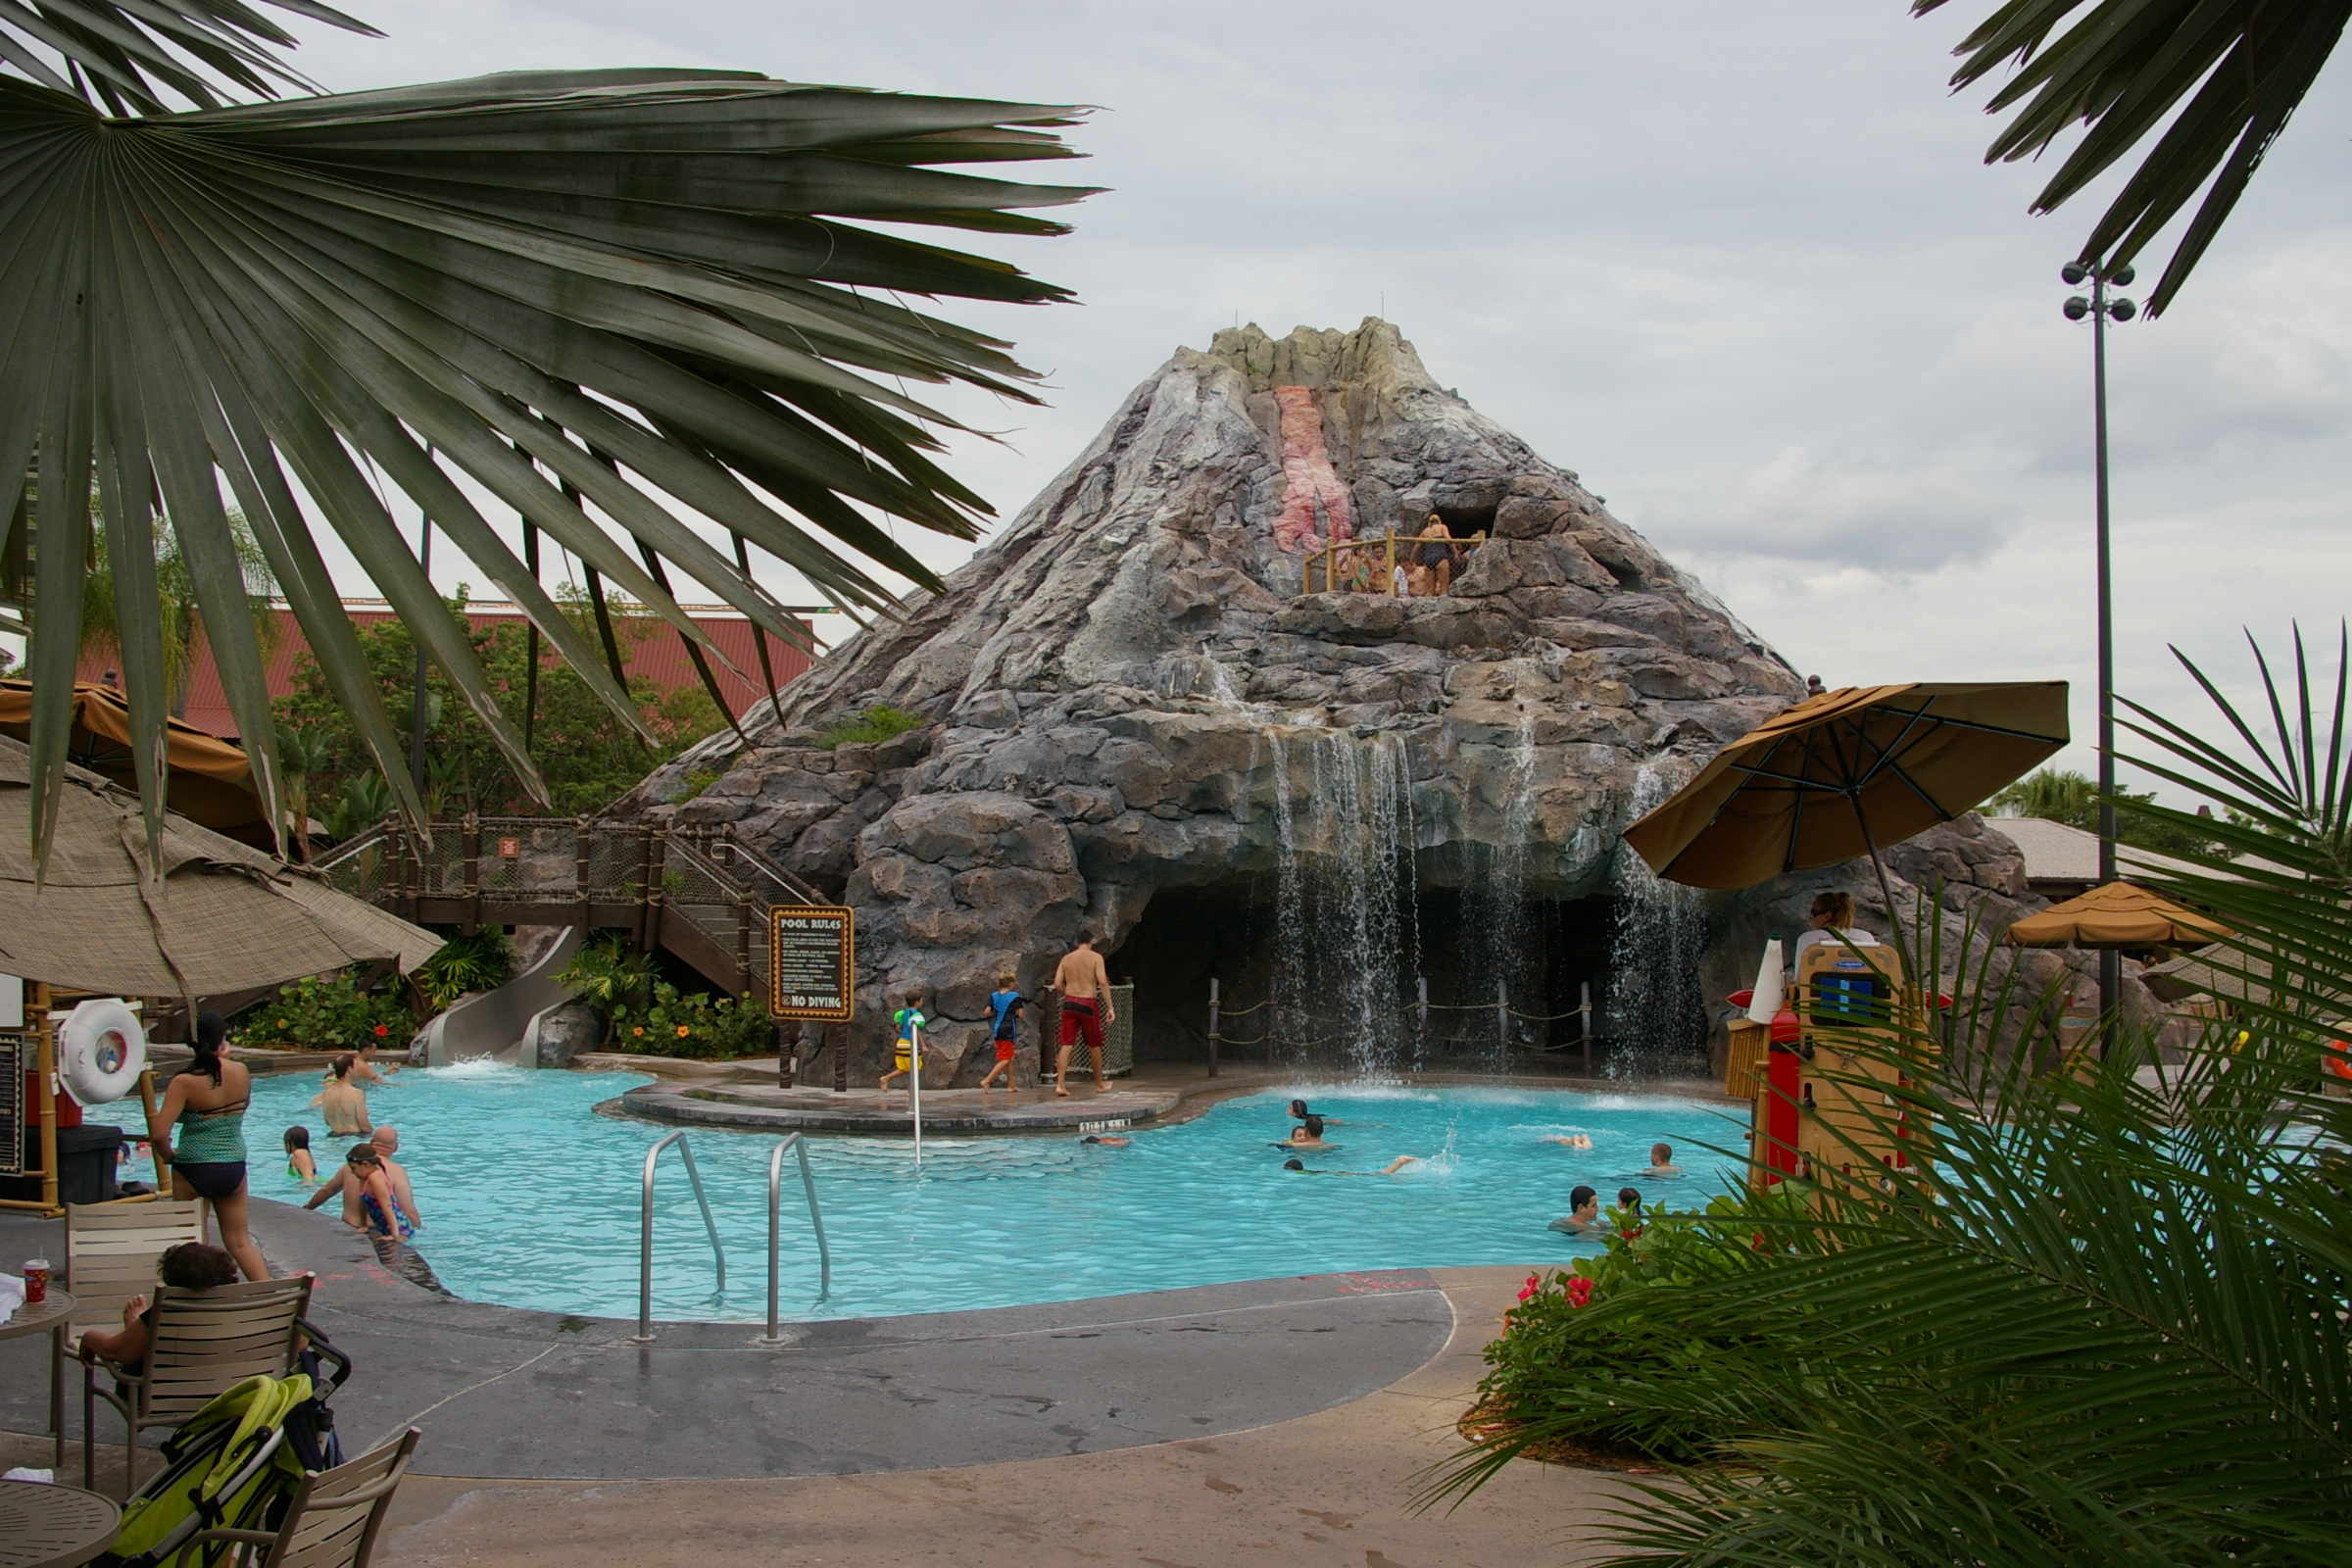 Pools Waterslides Disney S Monorail Hotels The Polynesian